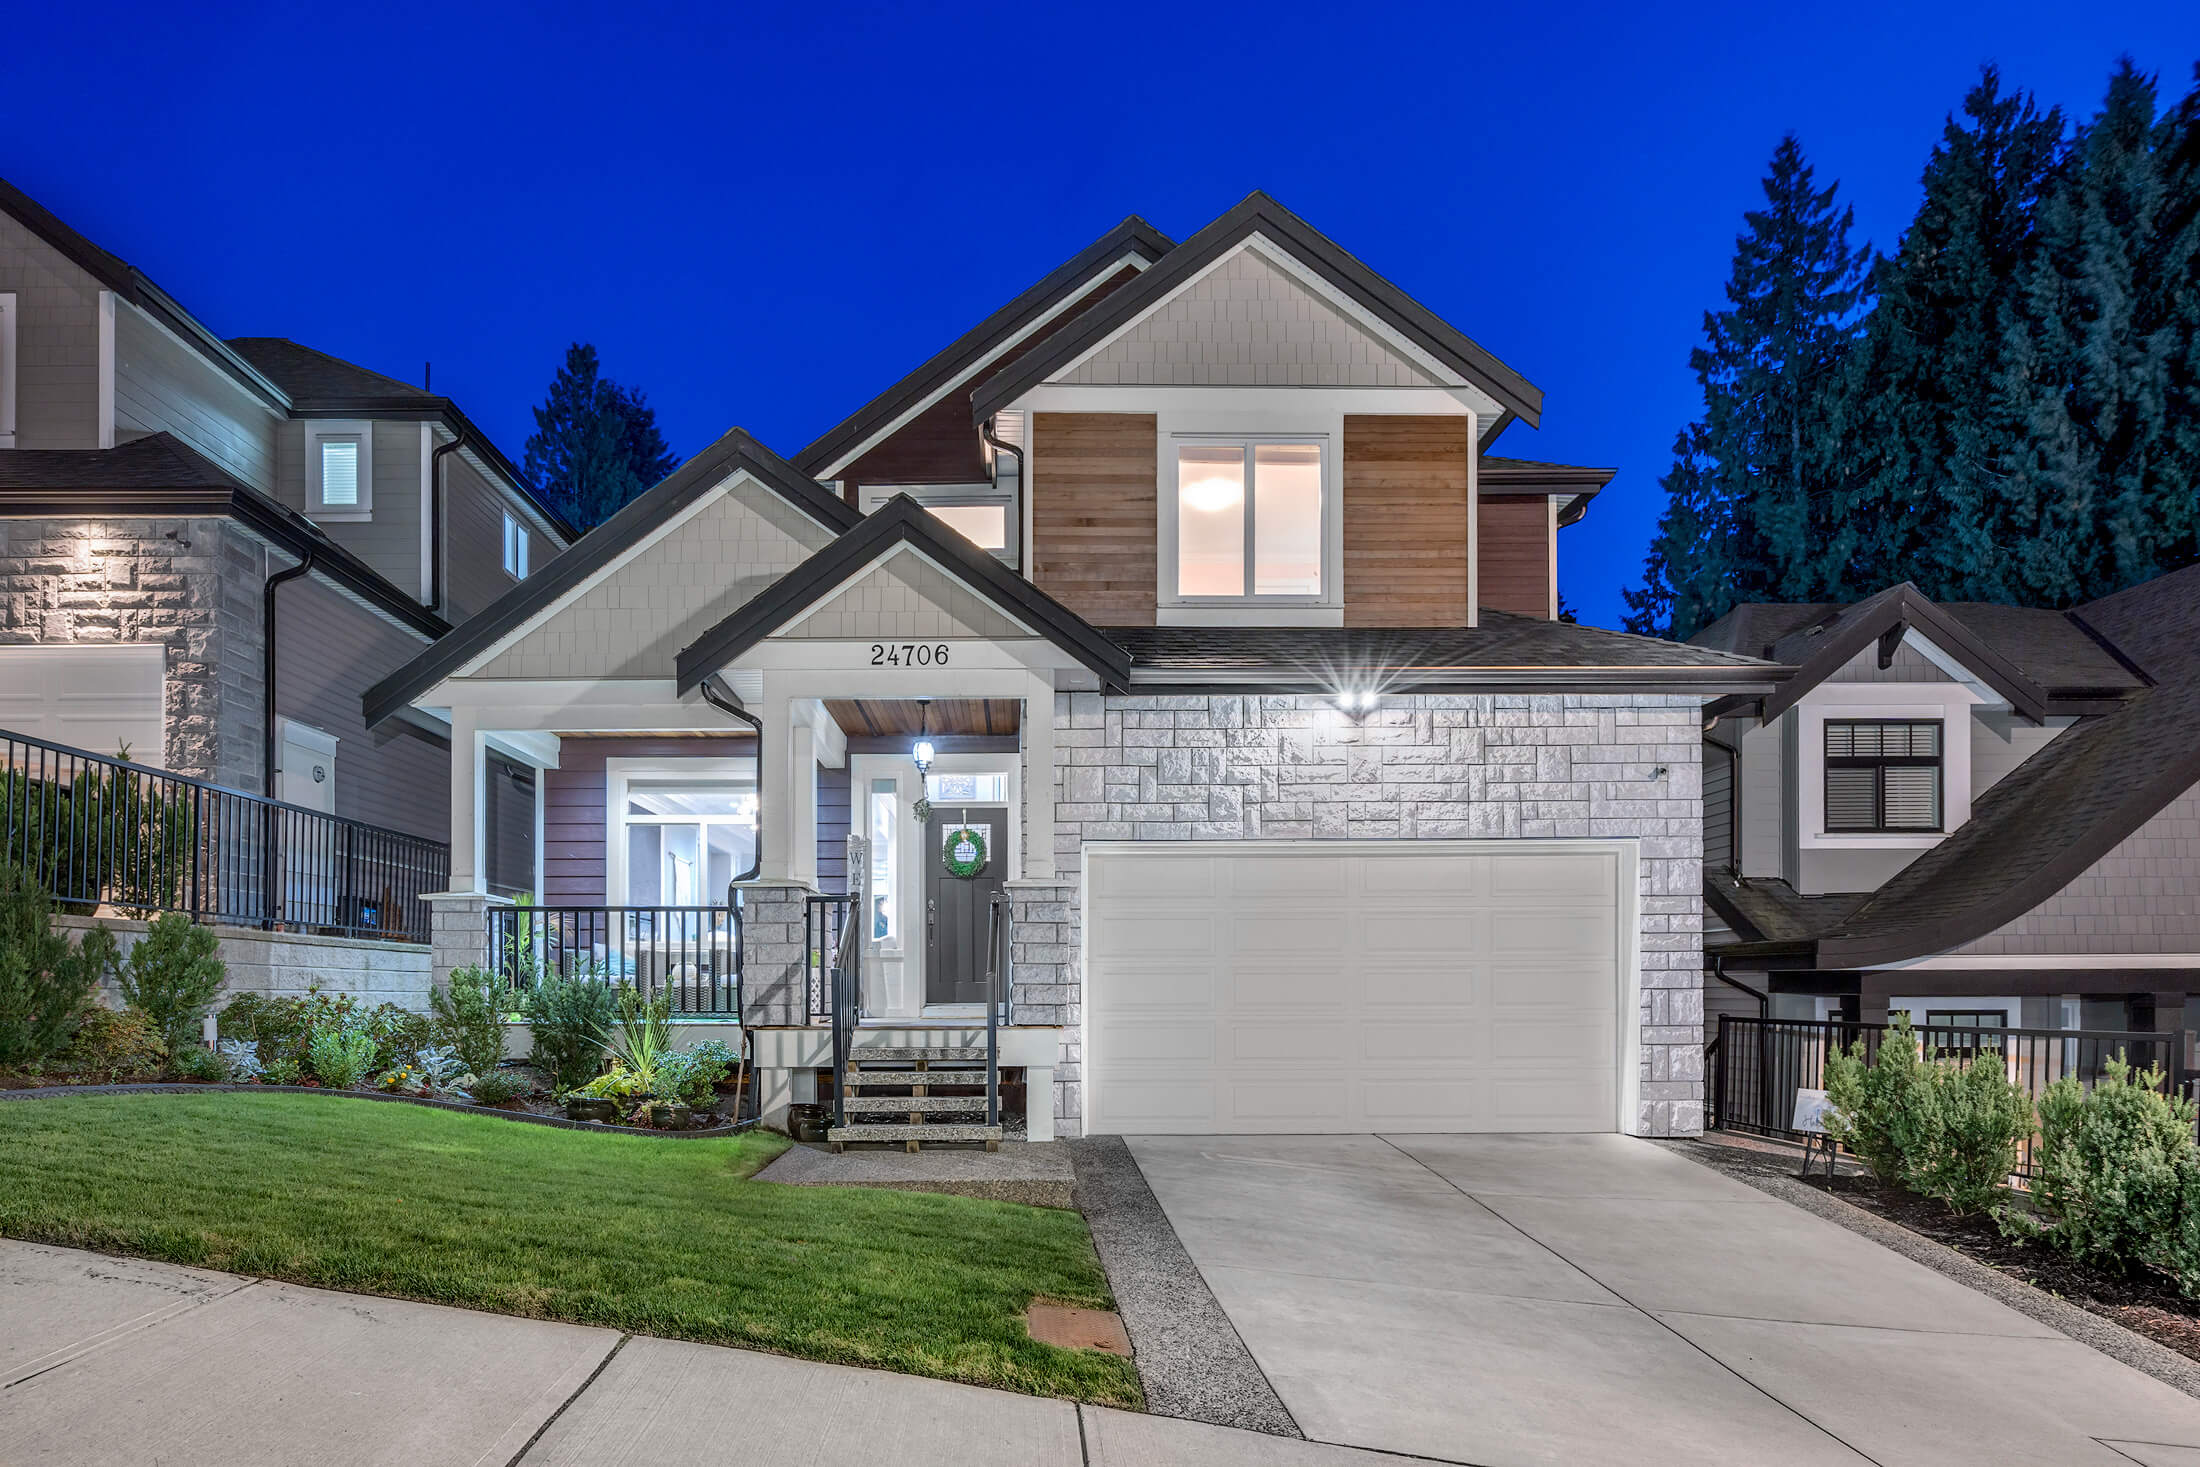 24706 100A Avenue Maple Ridge